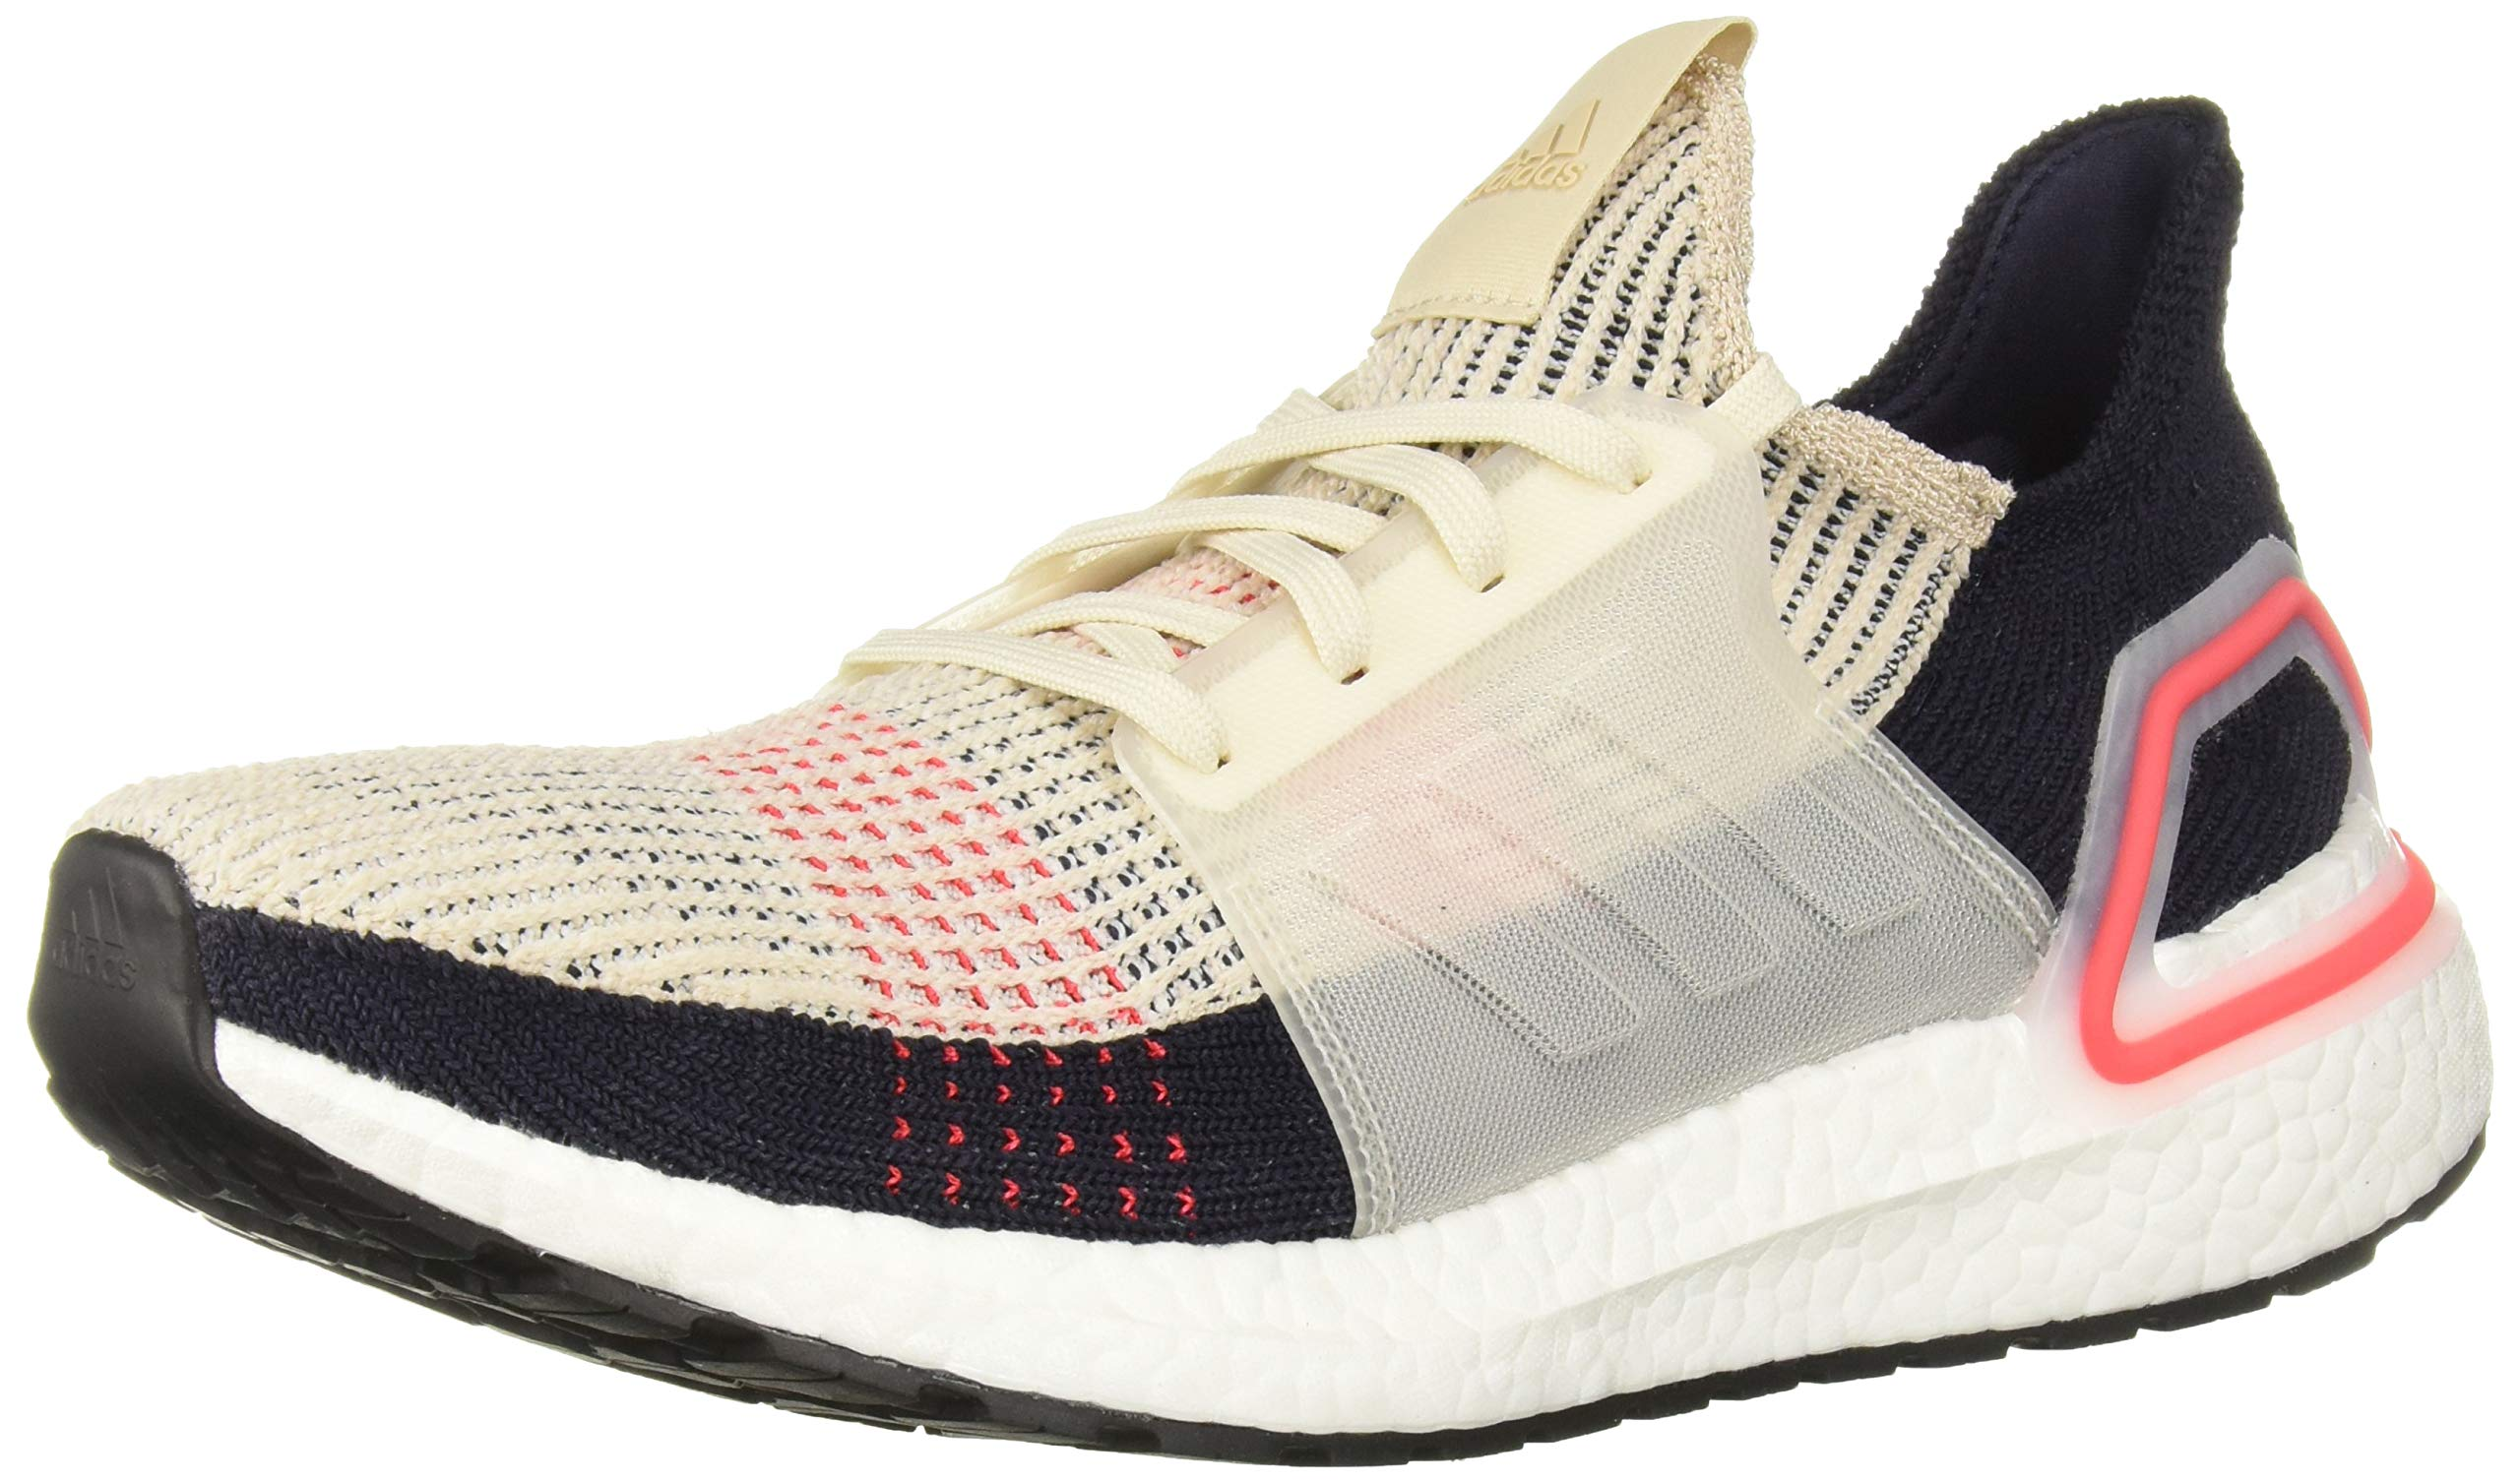 adidas Women's Ultraboost 19, Clear Brown/White/Legend Ink, 10.5 M US by adidas